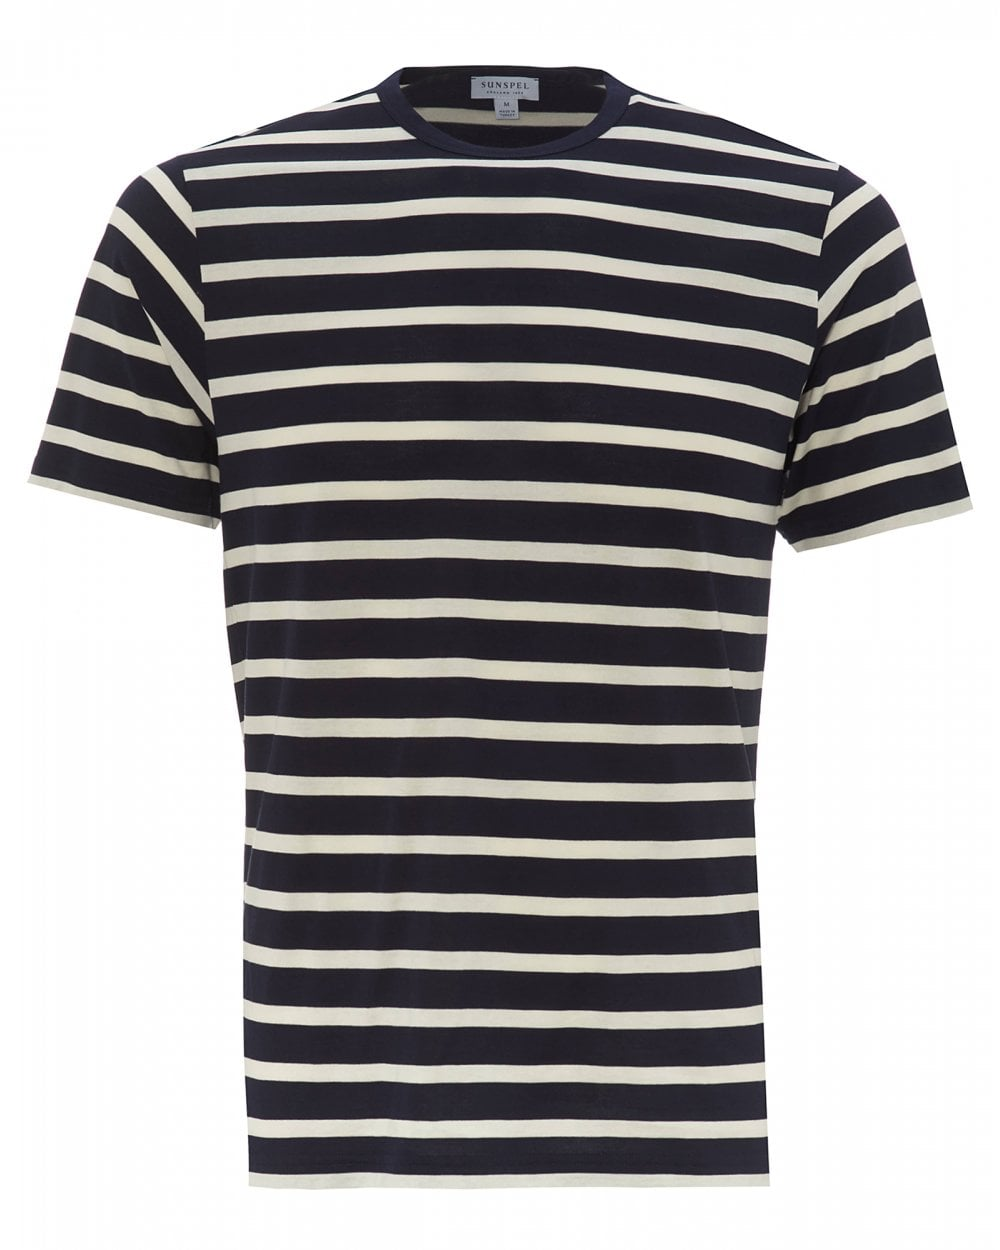 7c758f5aaa Sunspel Mens Breton Striped T-Shirt, Navy Blue Ecru Tee